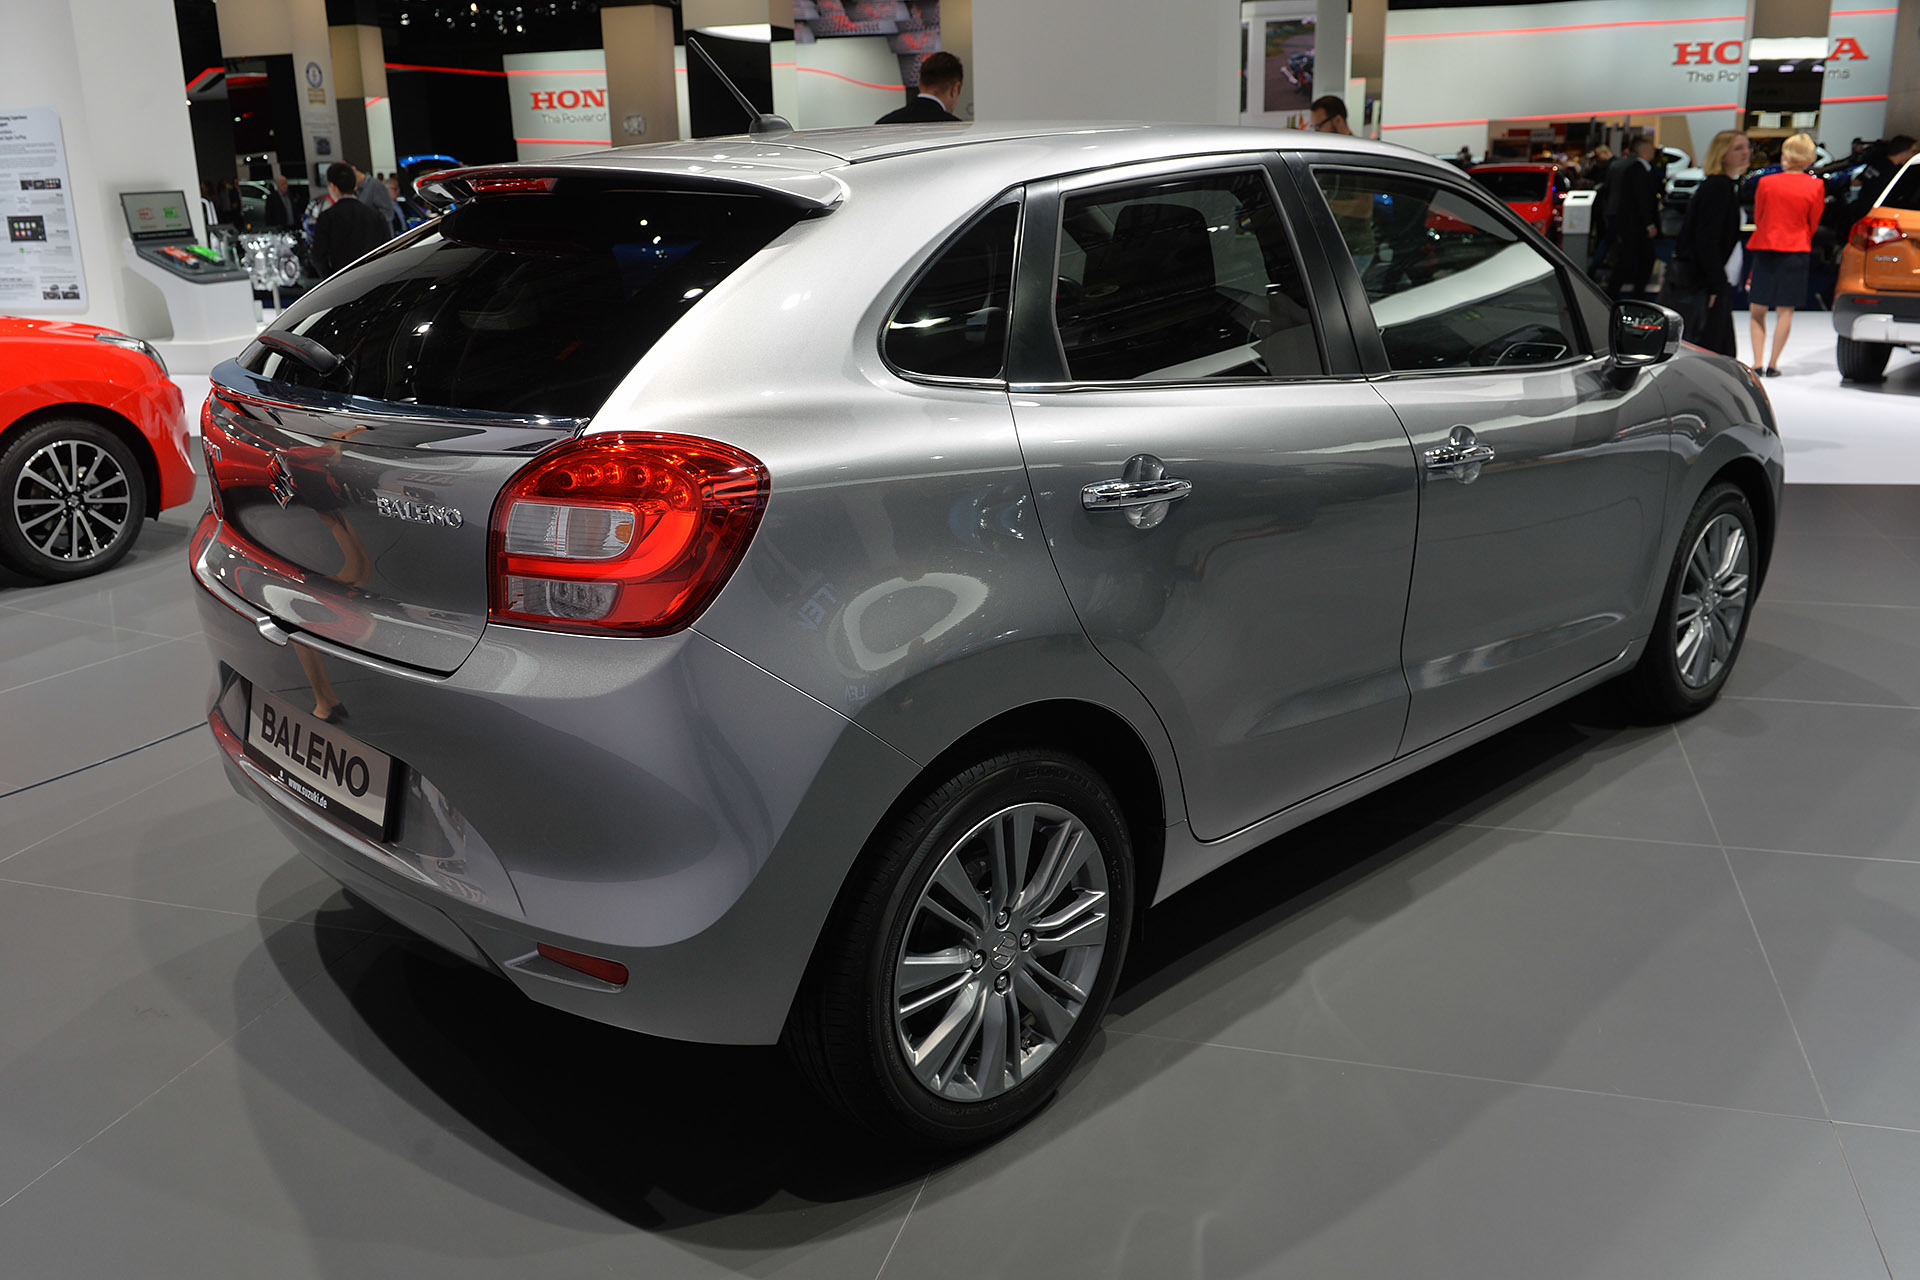 new agya 1.2 trd silver toyota yaris vitz turbo step 2 2016 suzuki baleno hatchback specs and photo gallery